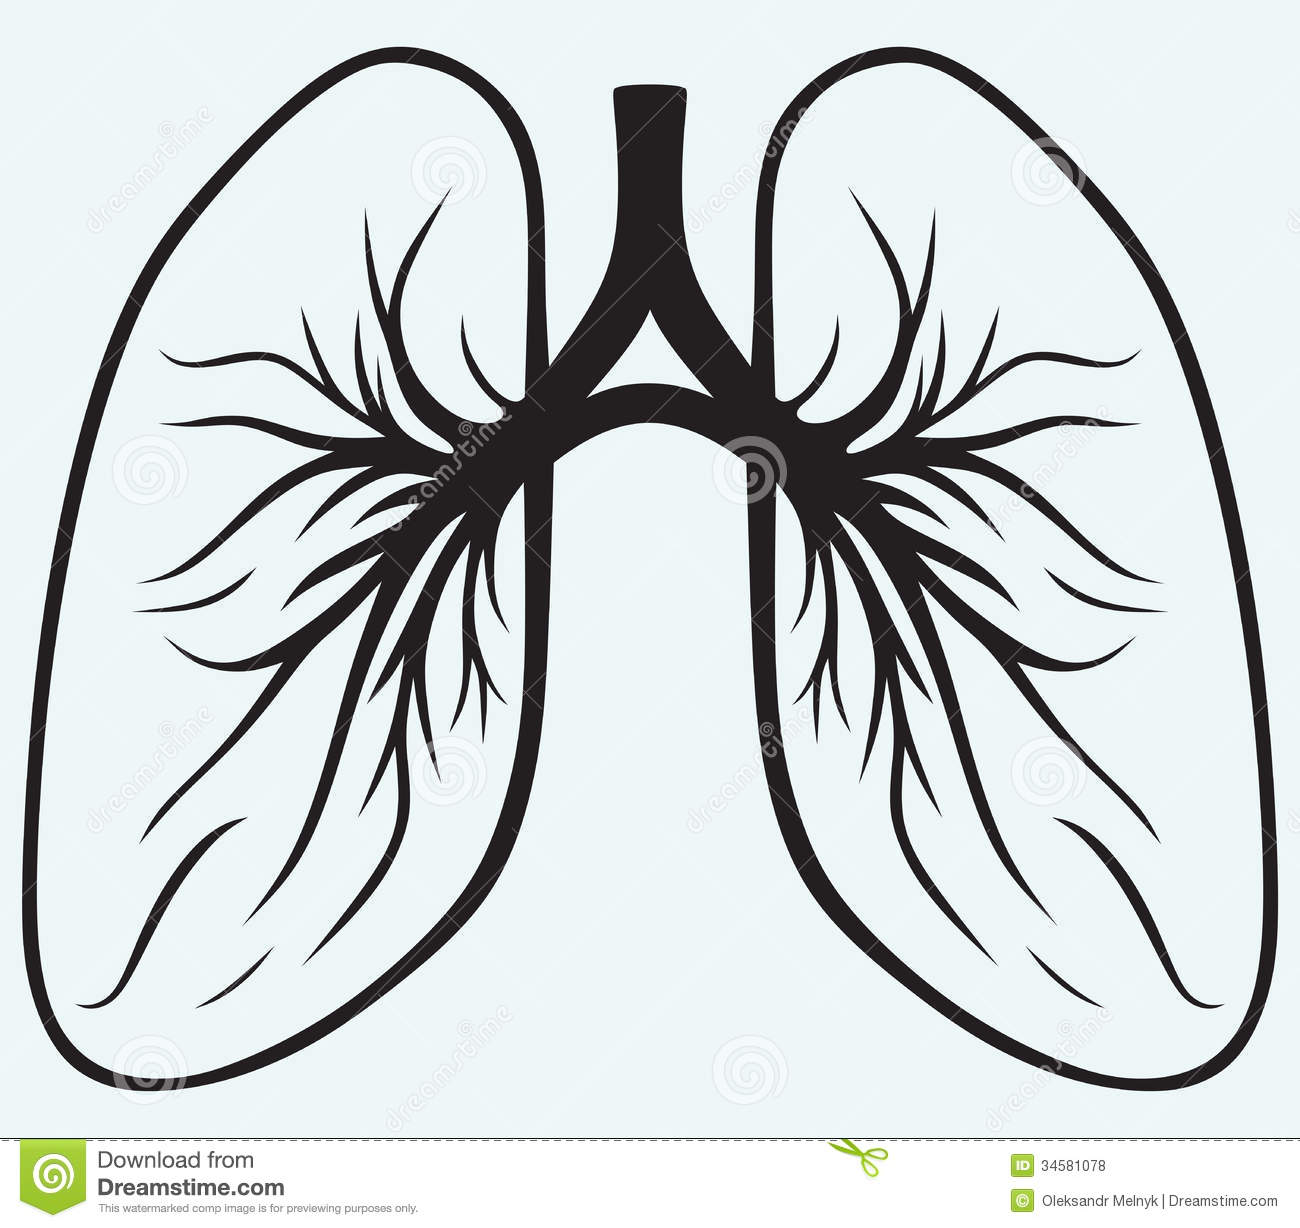 Human Lungs Royalty Free Stock Photos - Image: 34581078